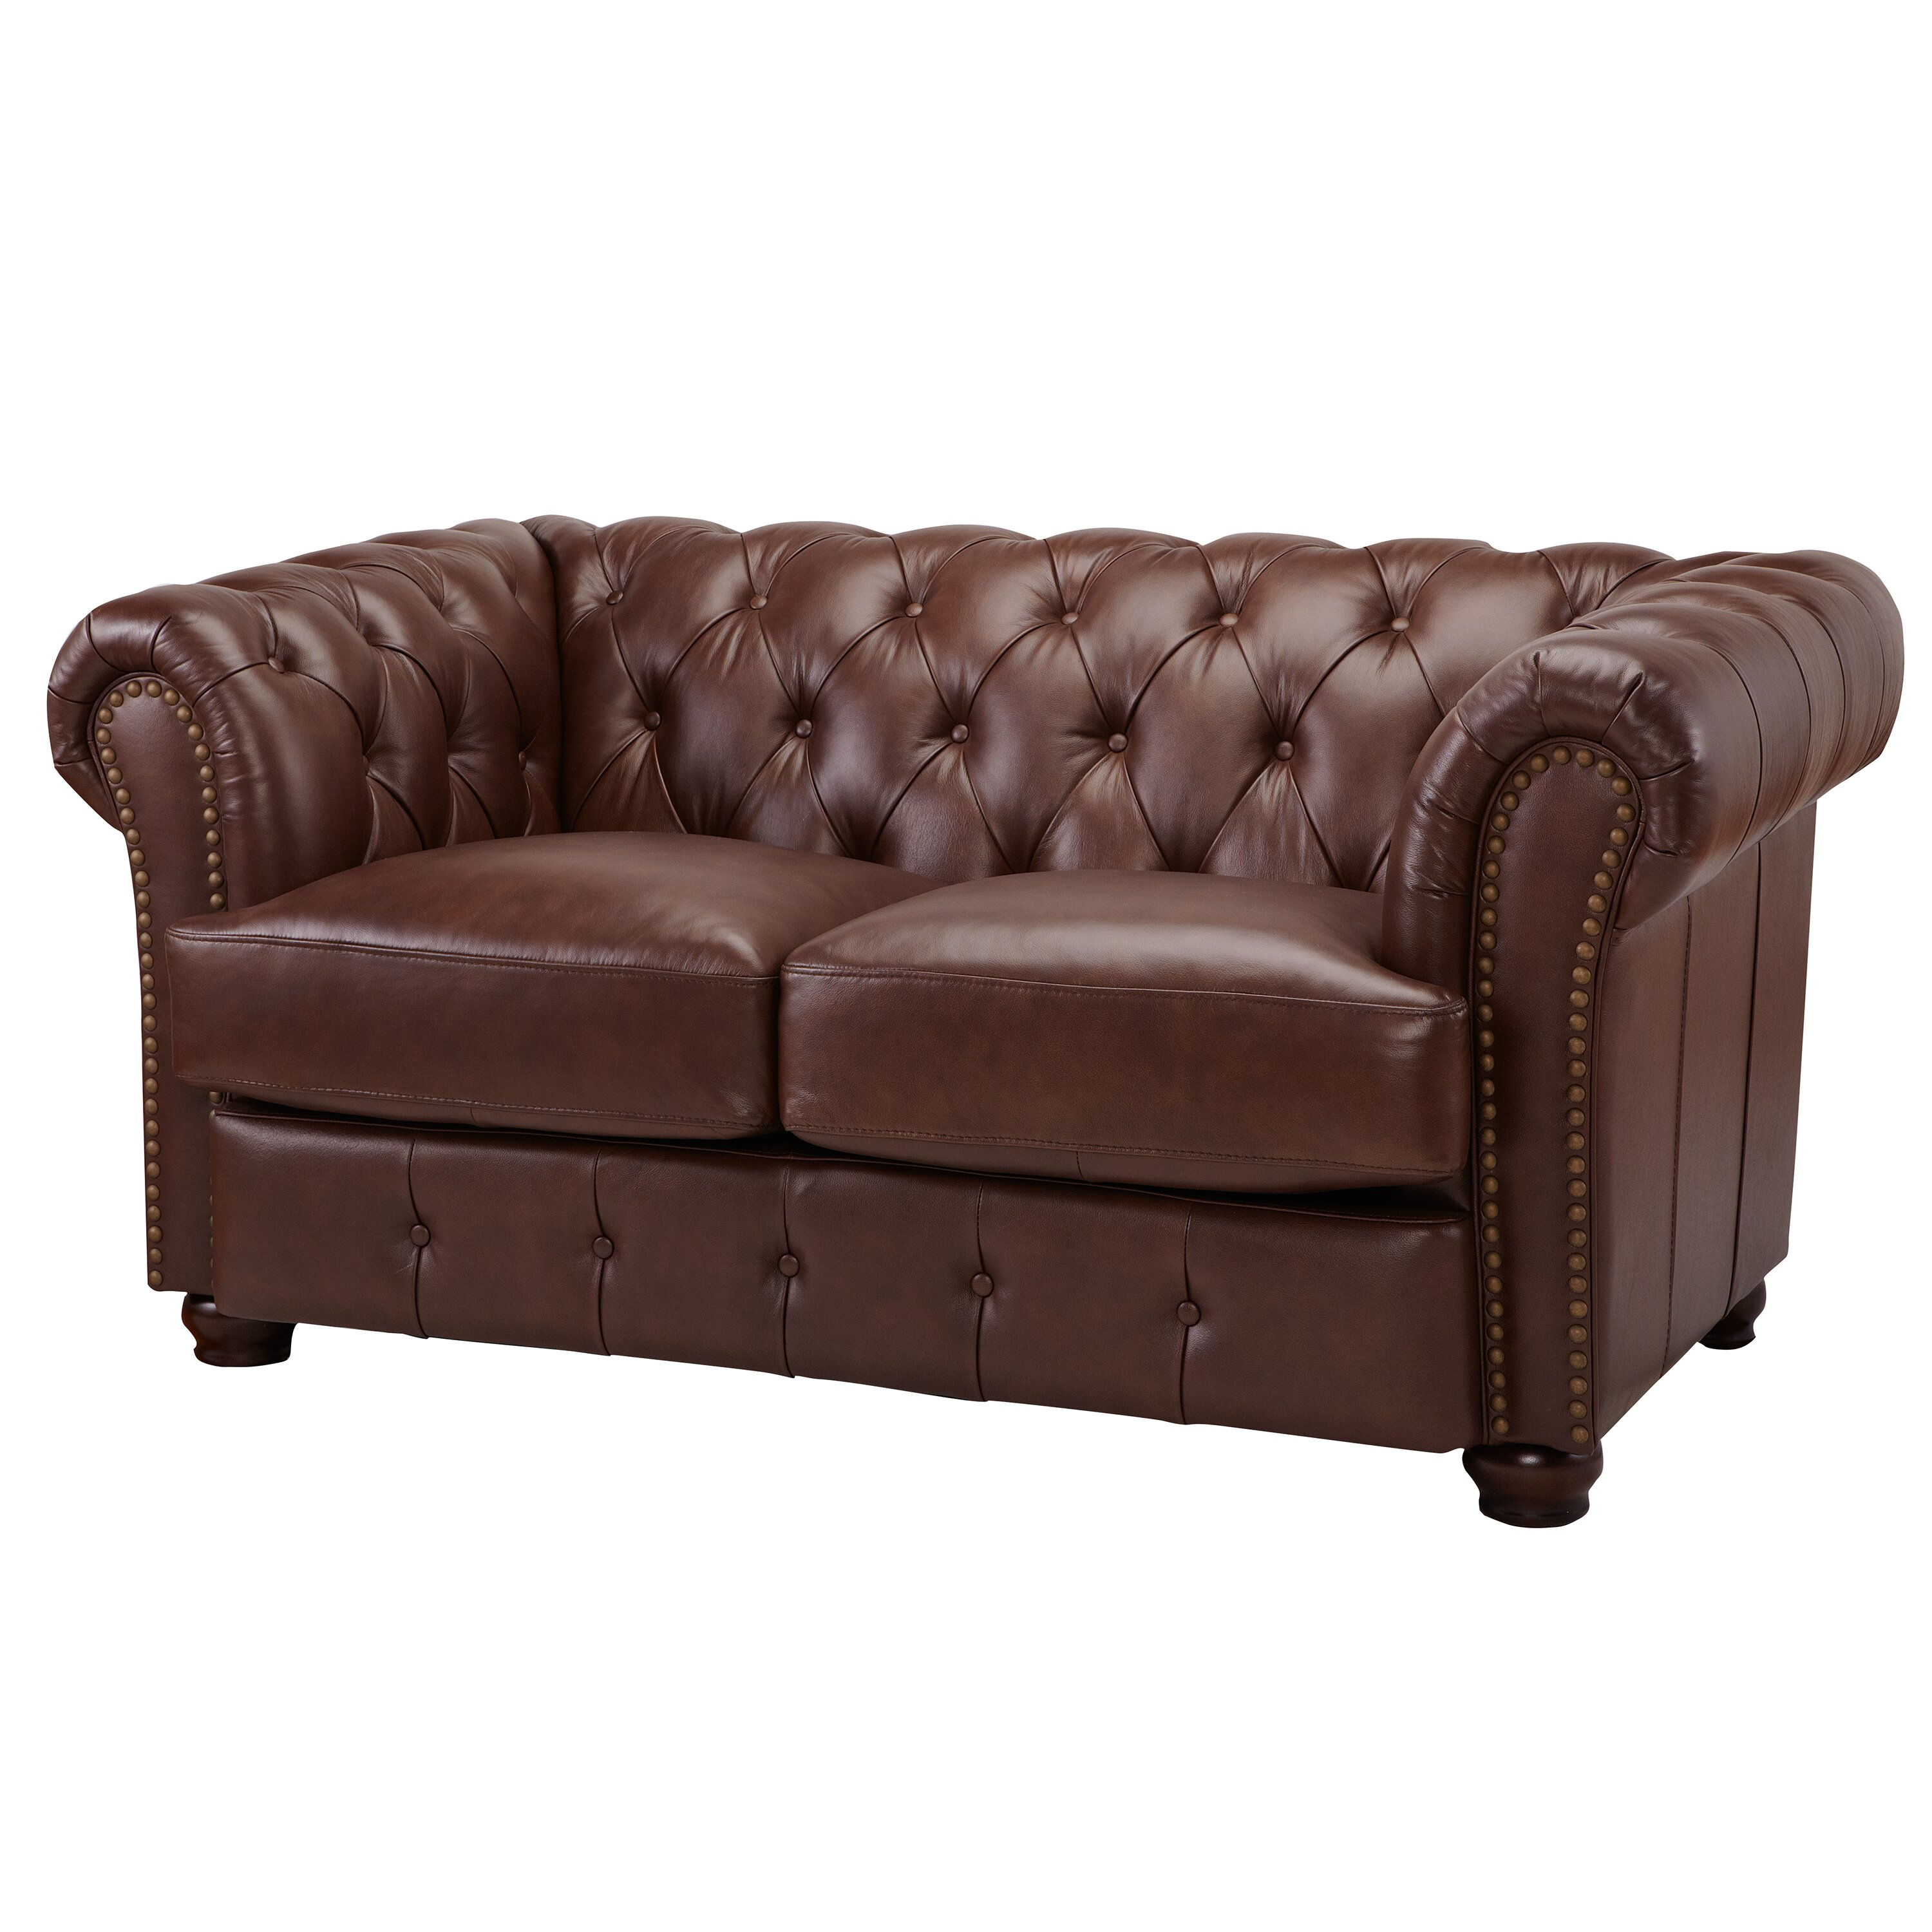 Decoro Leather Sofa Decoro Leather Sofa The Home Ideas